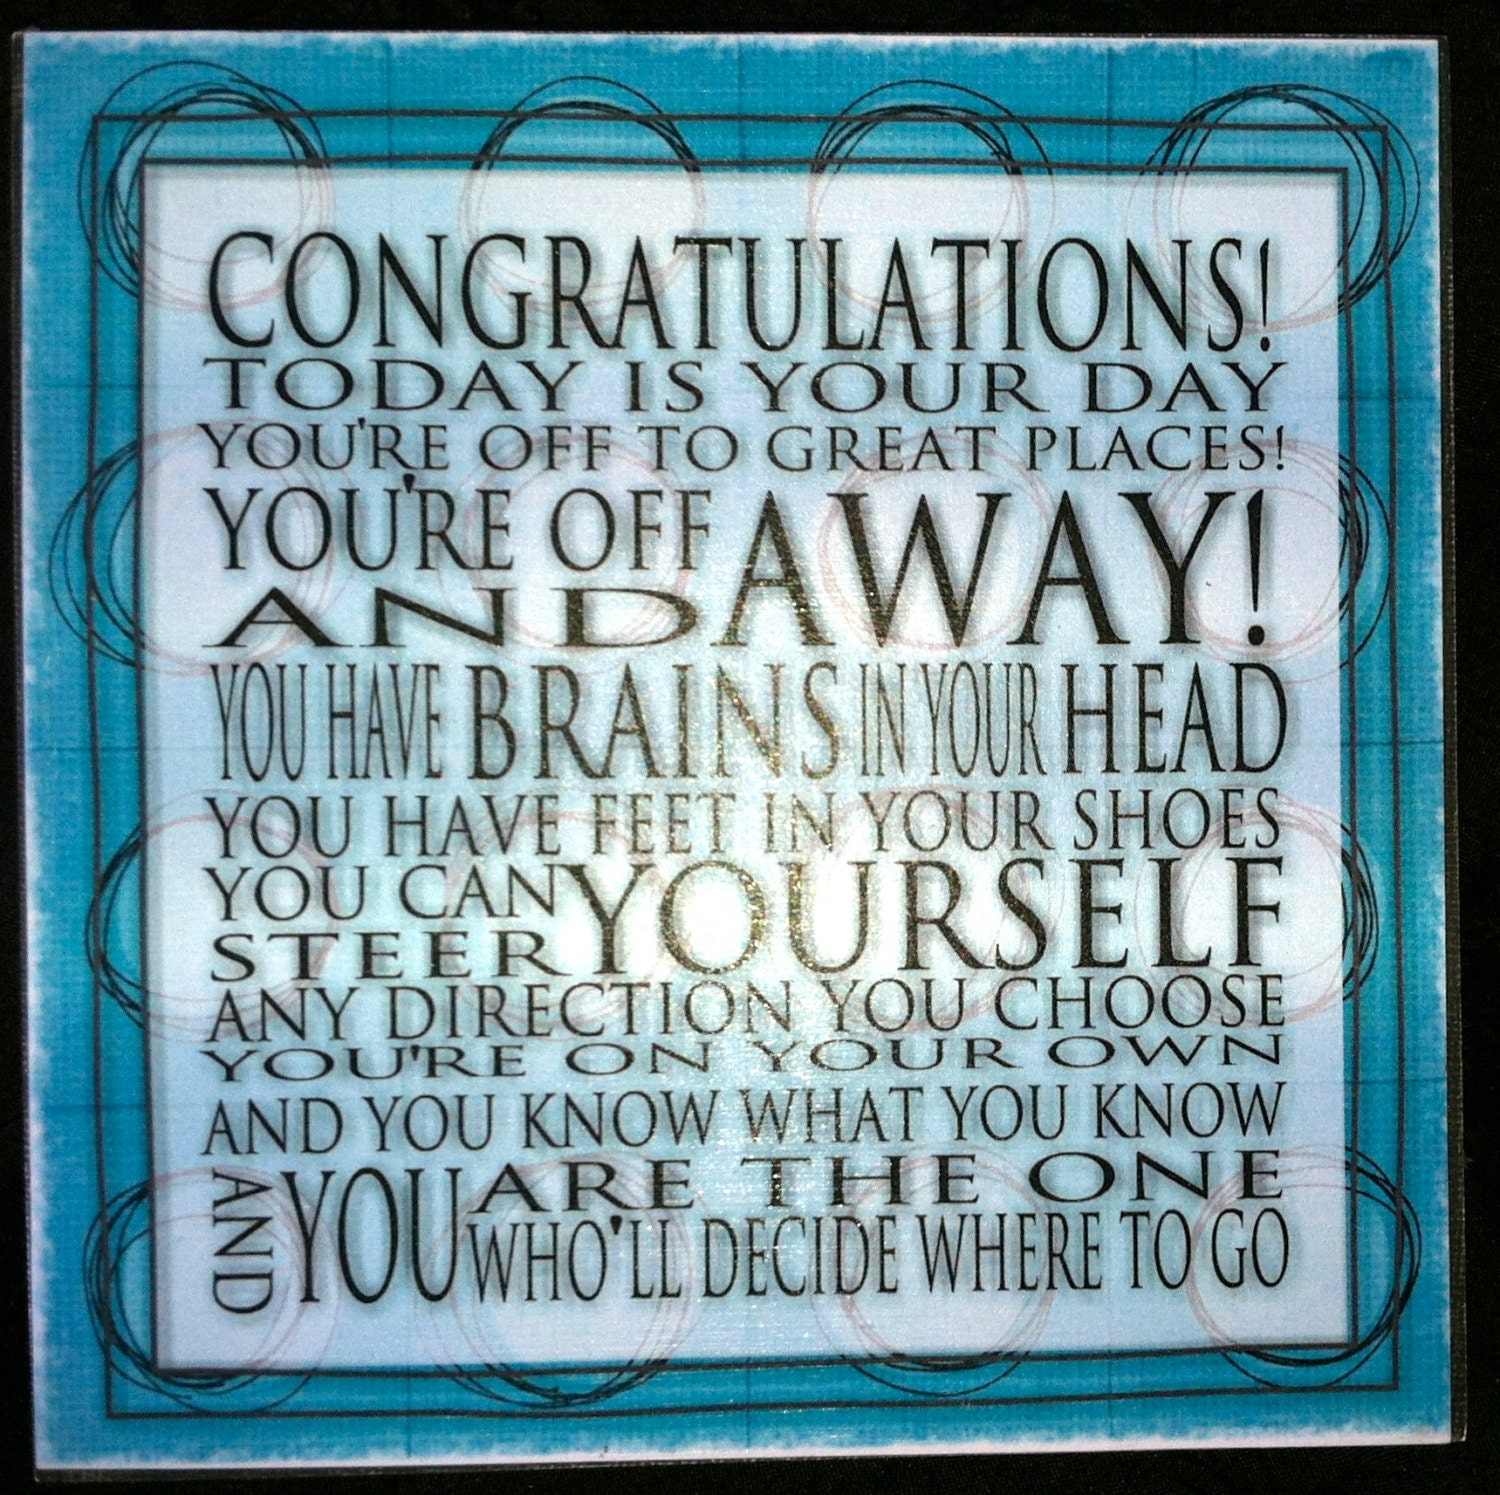 Dr Seuss Today Is Your Day Quote: Dr Seuss Today Is Your Day Cafe Mount 6x6 Graduation